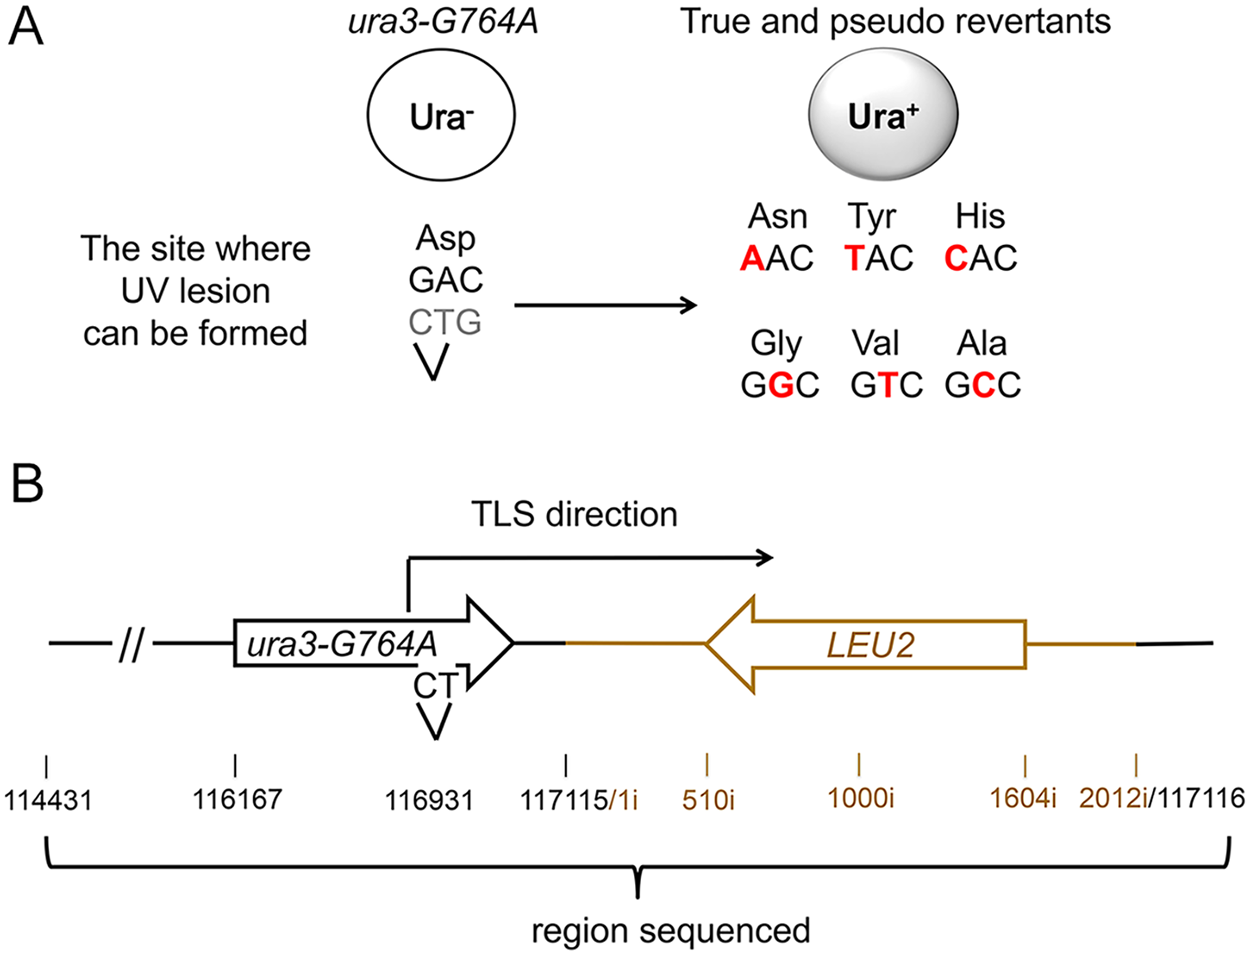 A genetic system to analyze the products of TLS through a chromosomal UV lesion.